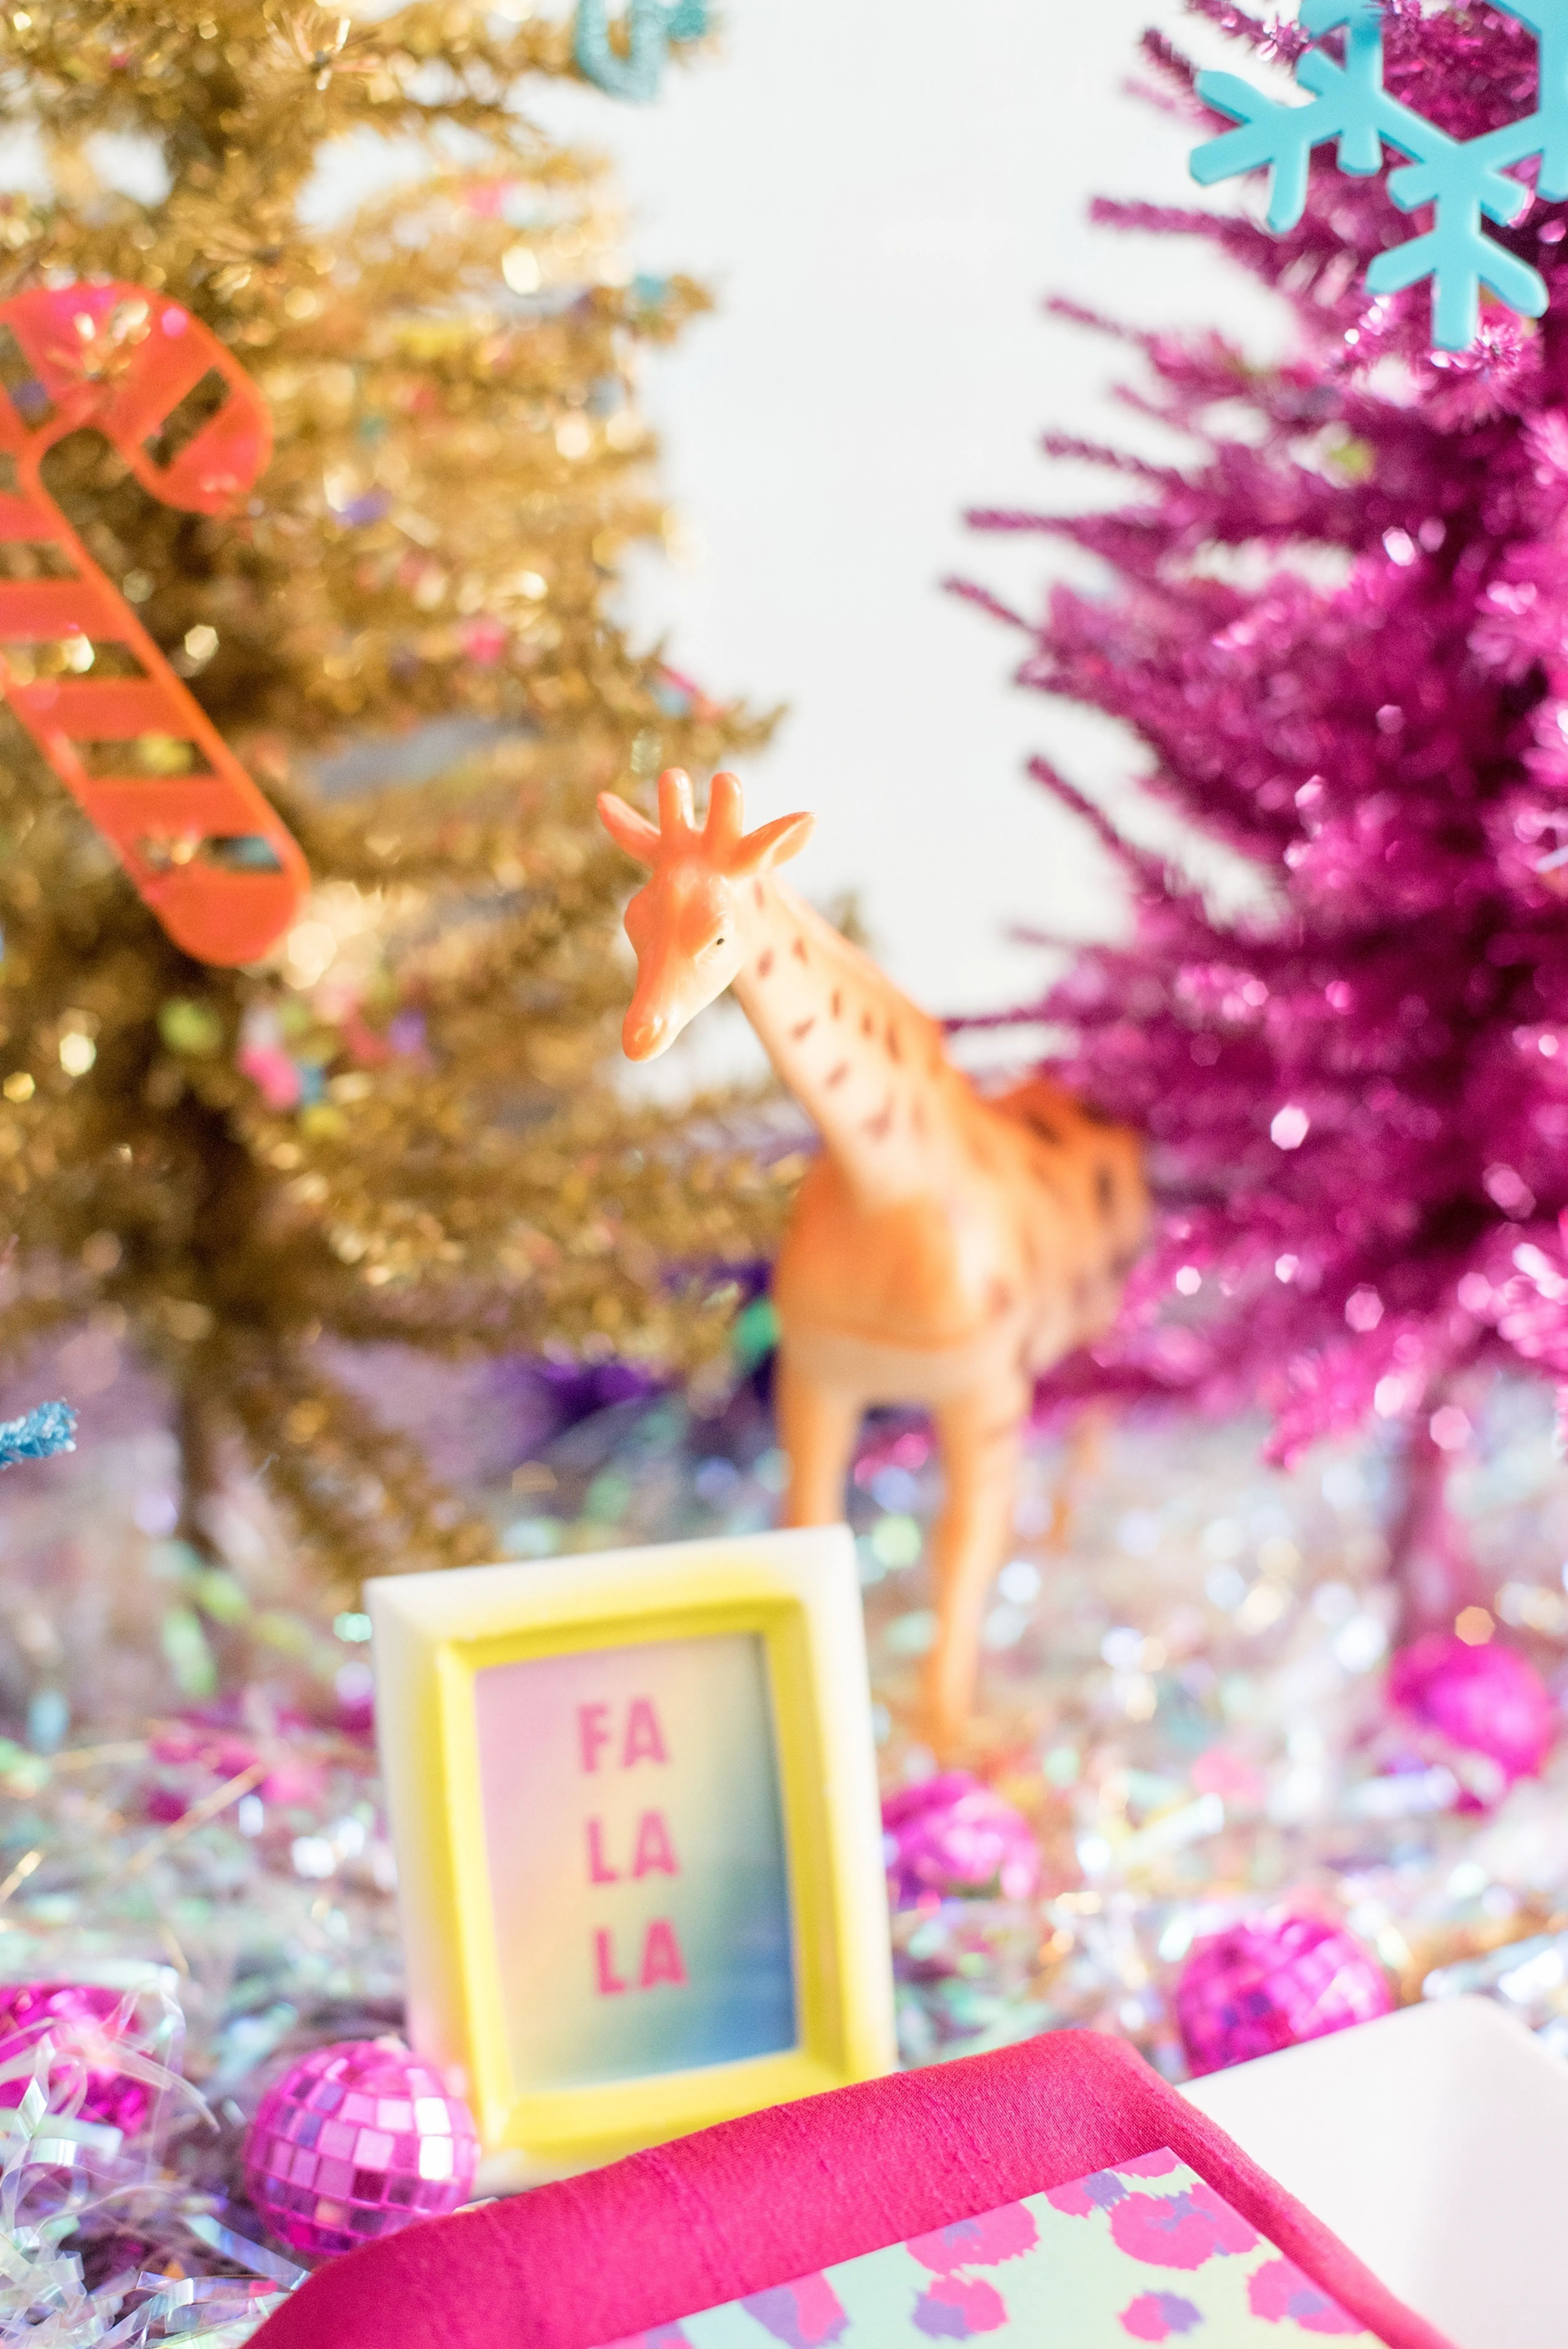 Christmas Events 2021 Nys Colorful Tinsel And Sequin Christmas Party Ideas In 2021 Holiday Tablescapes Pink Christmas Tree Holiday